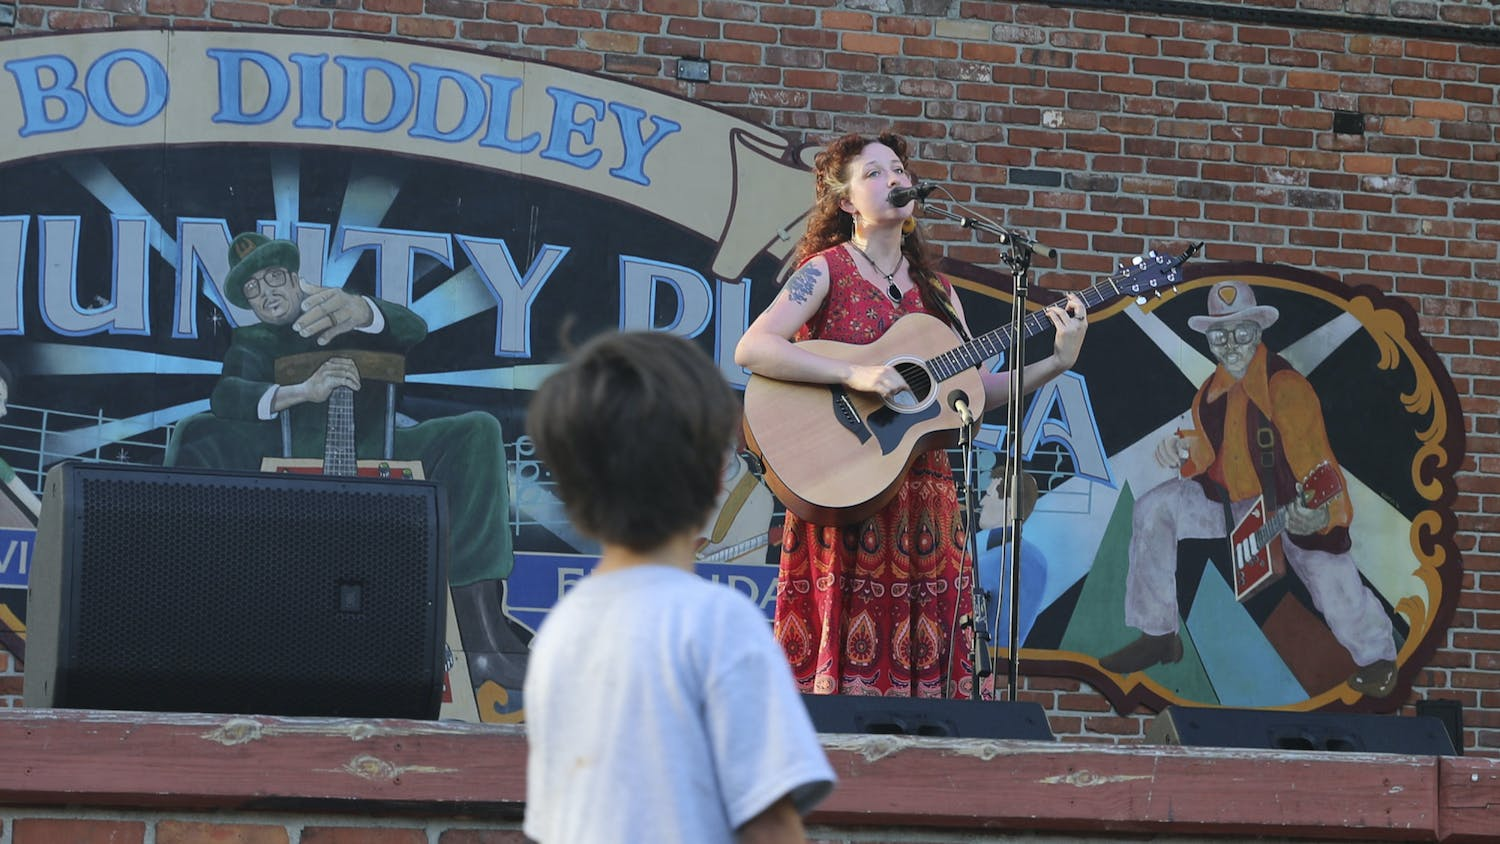 A boy look up at Sara Donnachie, also known as Pose Norma, a Santa Fe music theory student, singing on stage at Bo Diddley Plaza in Gainesville on Thursday, July 15, 2021.